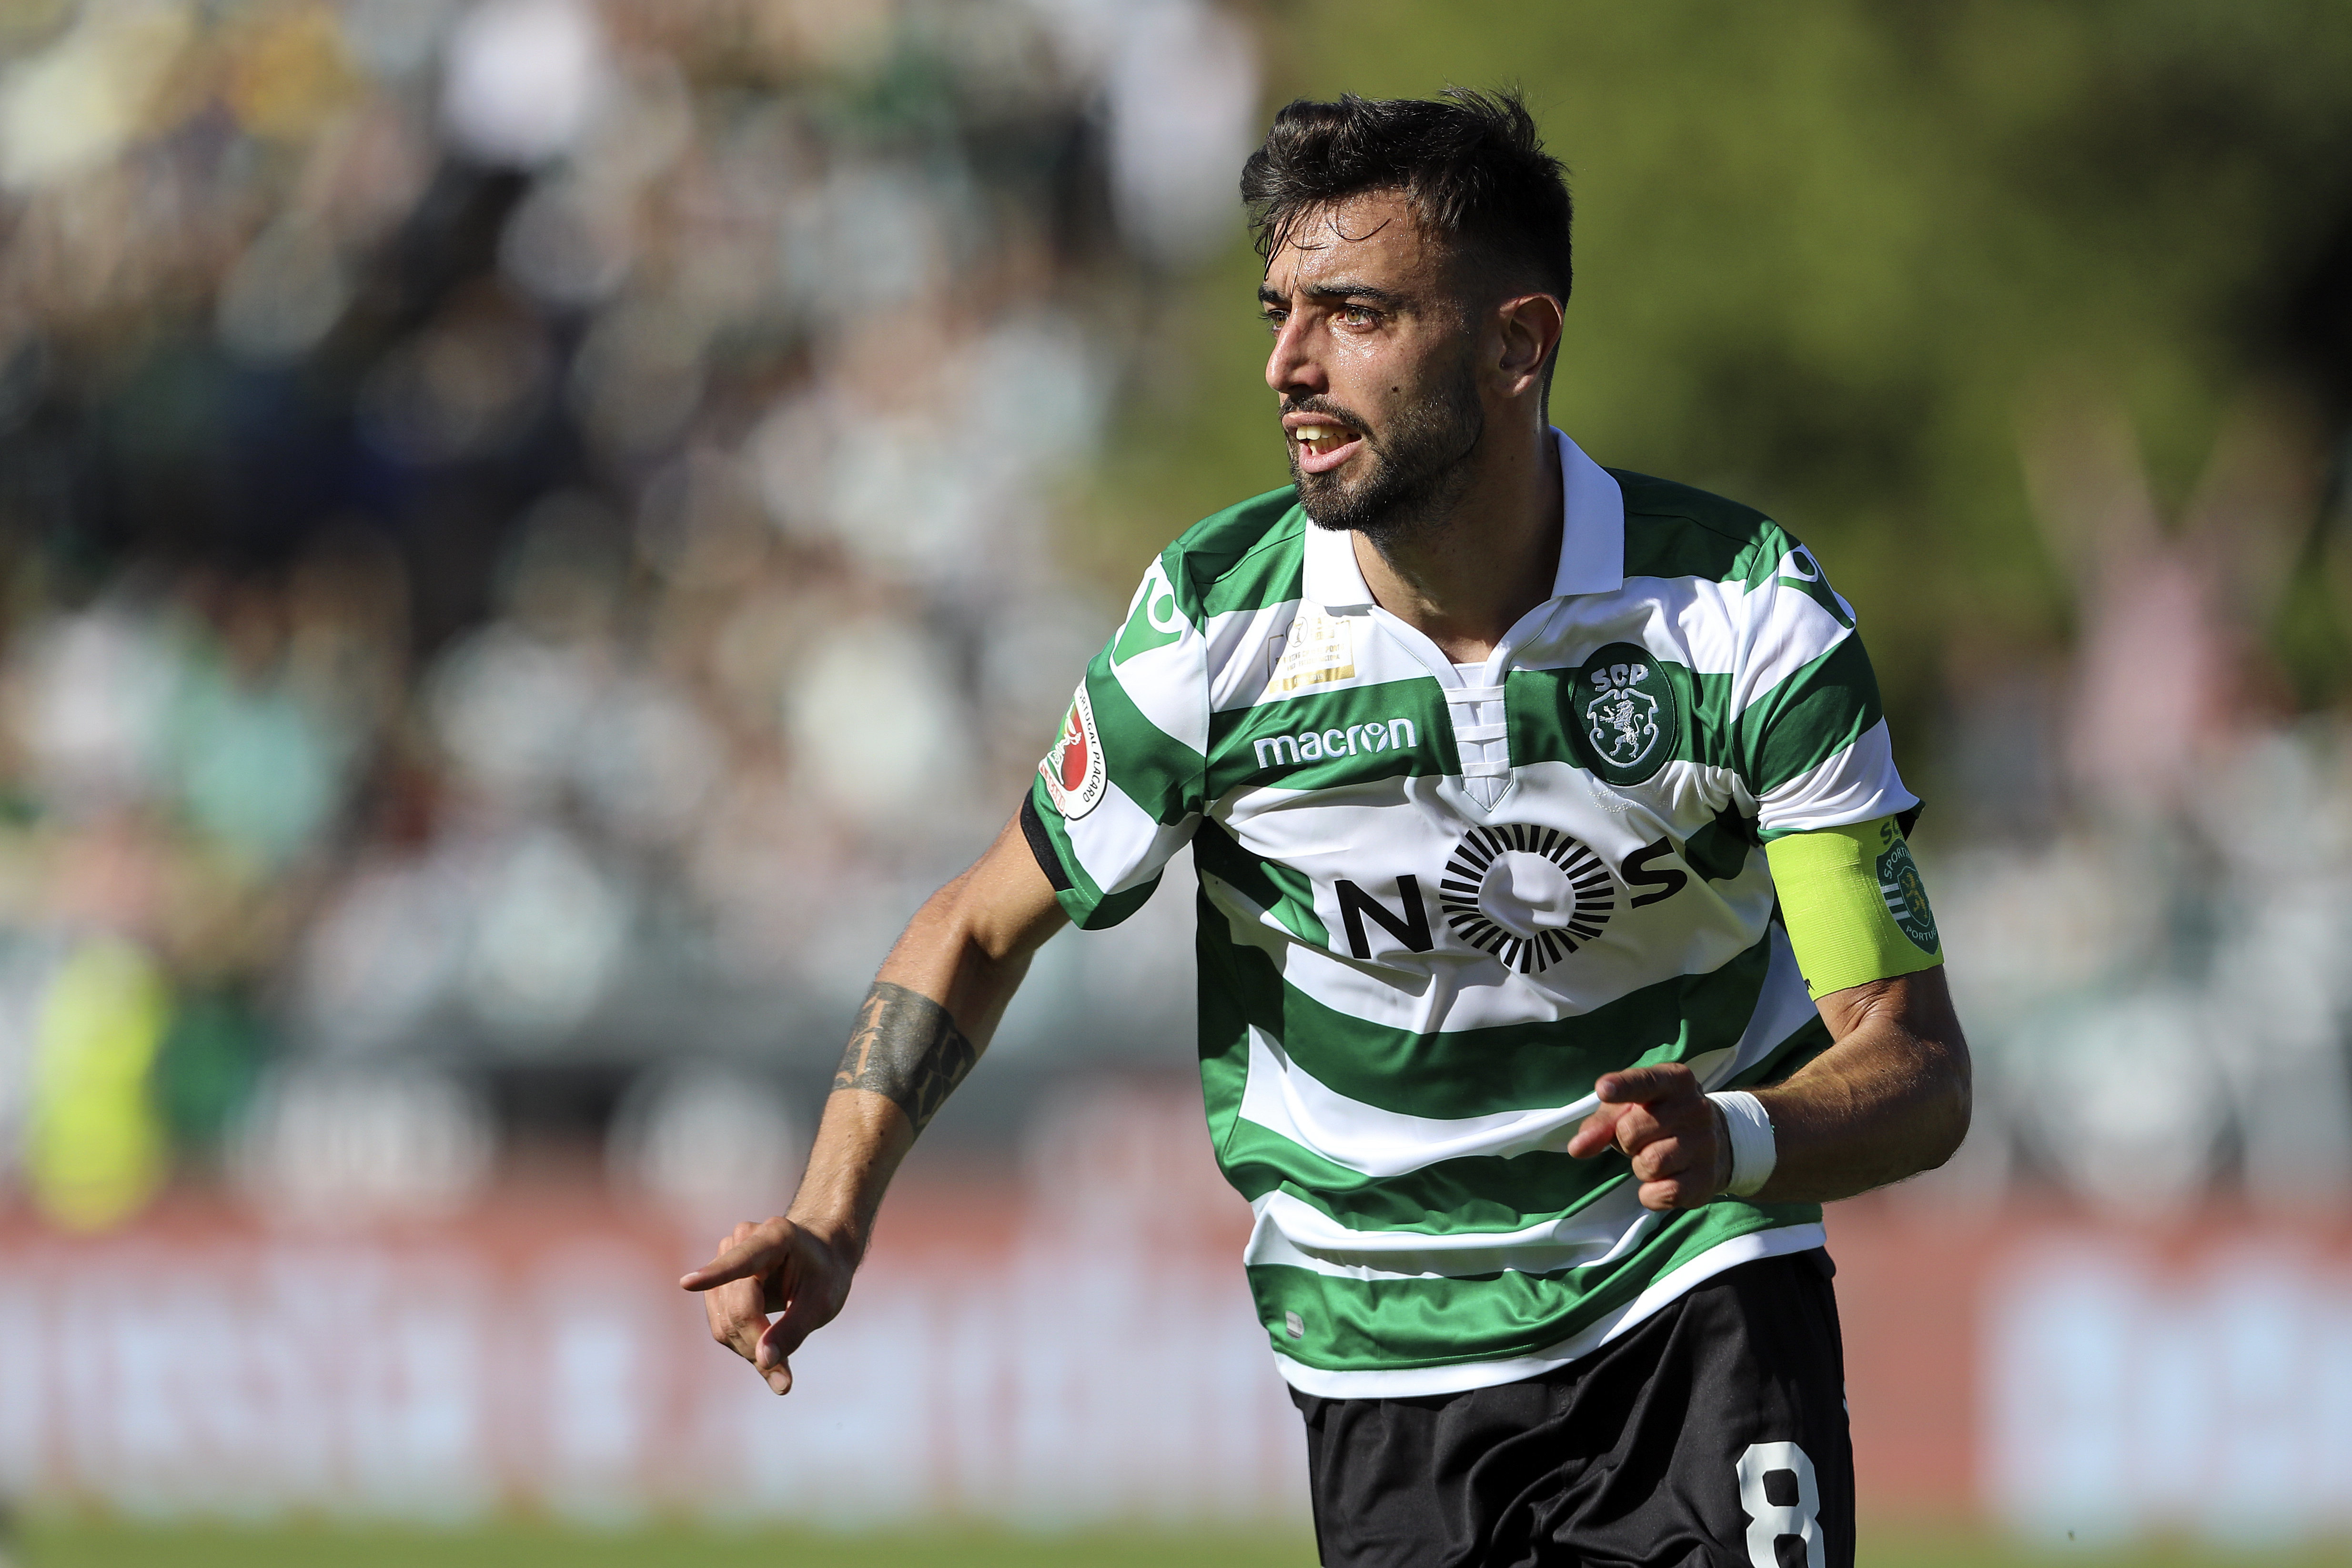 Bruno Fernandes could be on his way to the Premier League. Image: PA Images